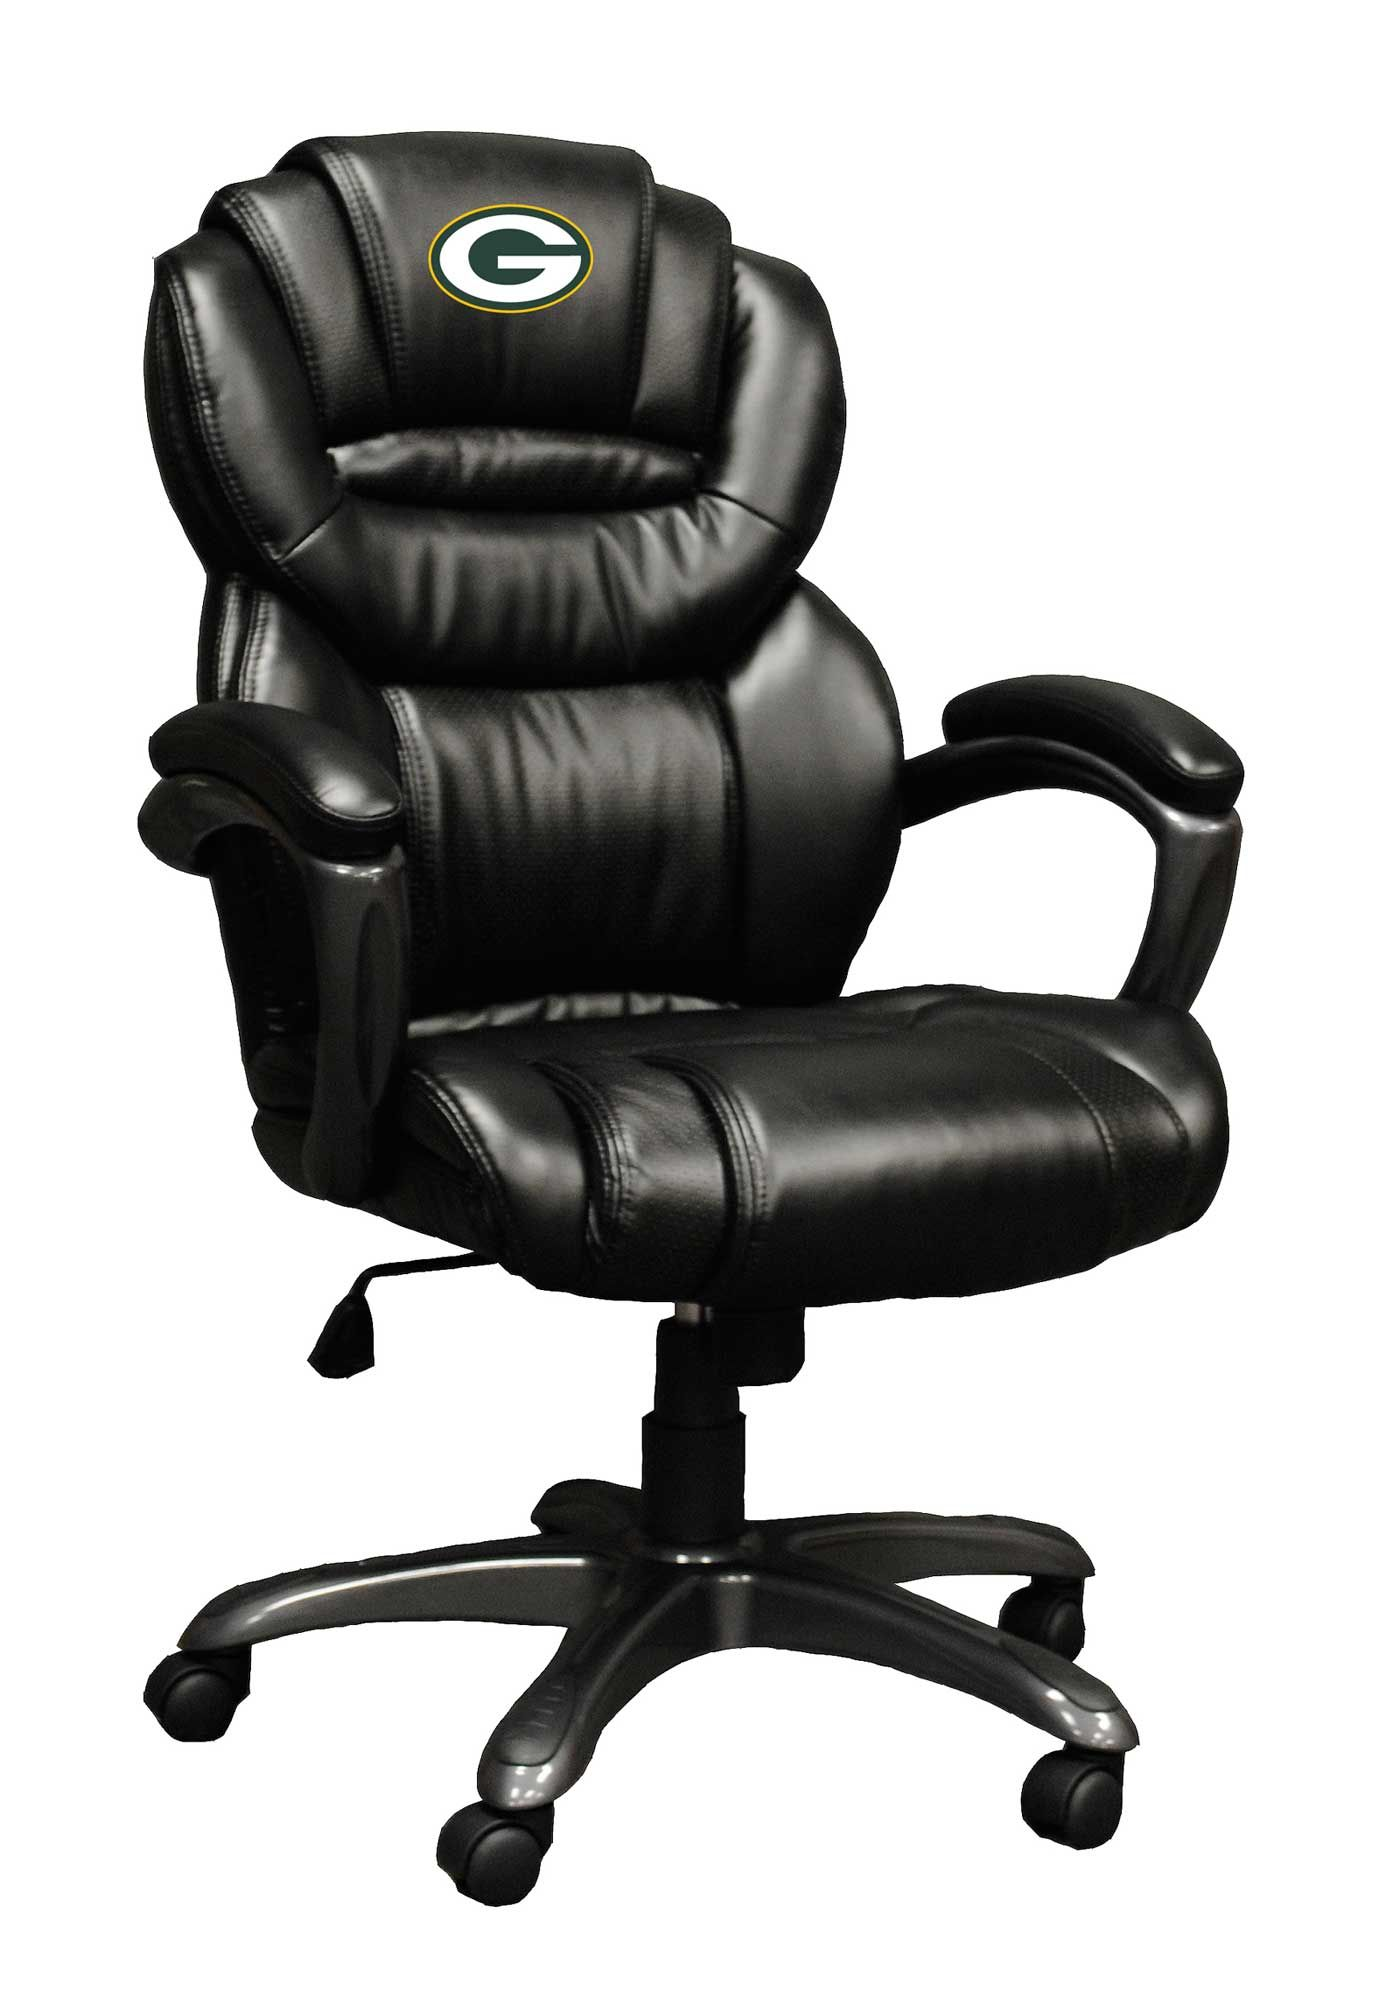 furniture problems office viewing computer for gaming photo back gallery attachment also of gorgeous and chairs chair comfy